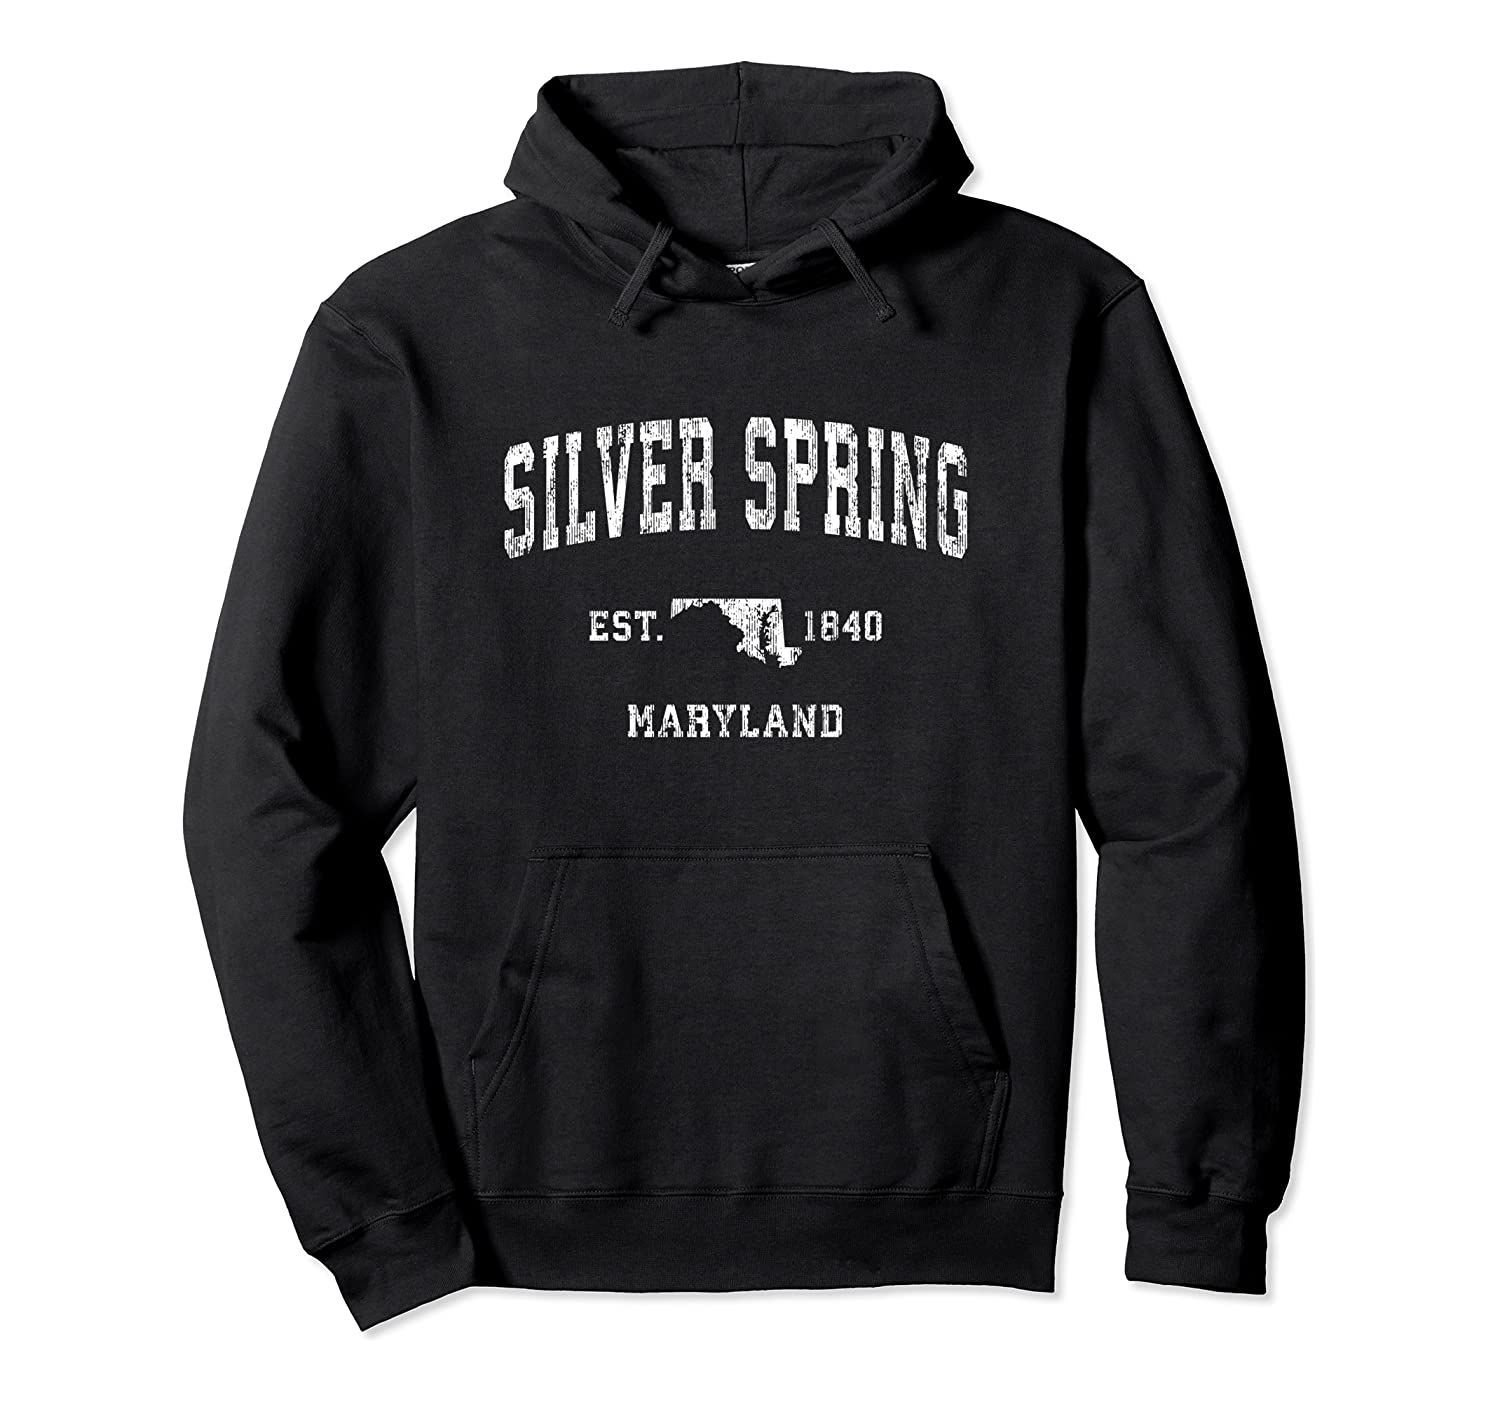 Silver Spring Maryland MD Vintage Athletic Sports Design Pullover Hoodie, T Shirt, Sweatshirt